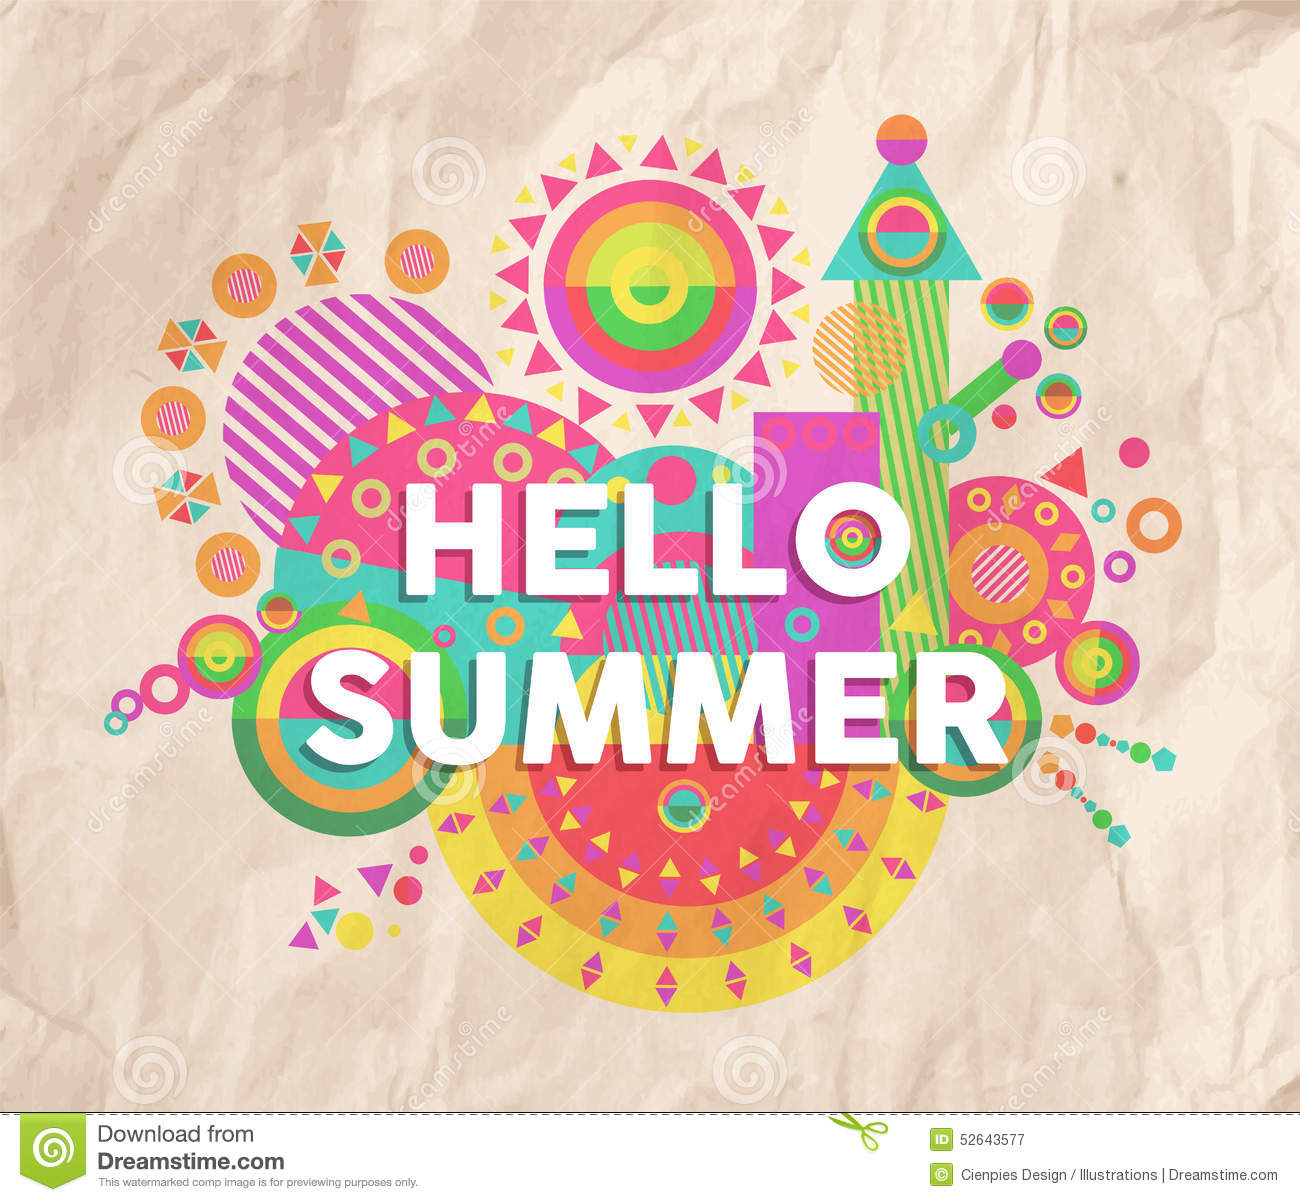 Hello Summer Quote Poster Design Stock Vector - Image: 52643577